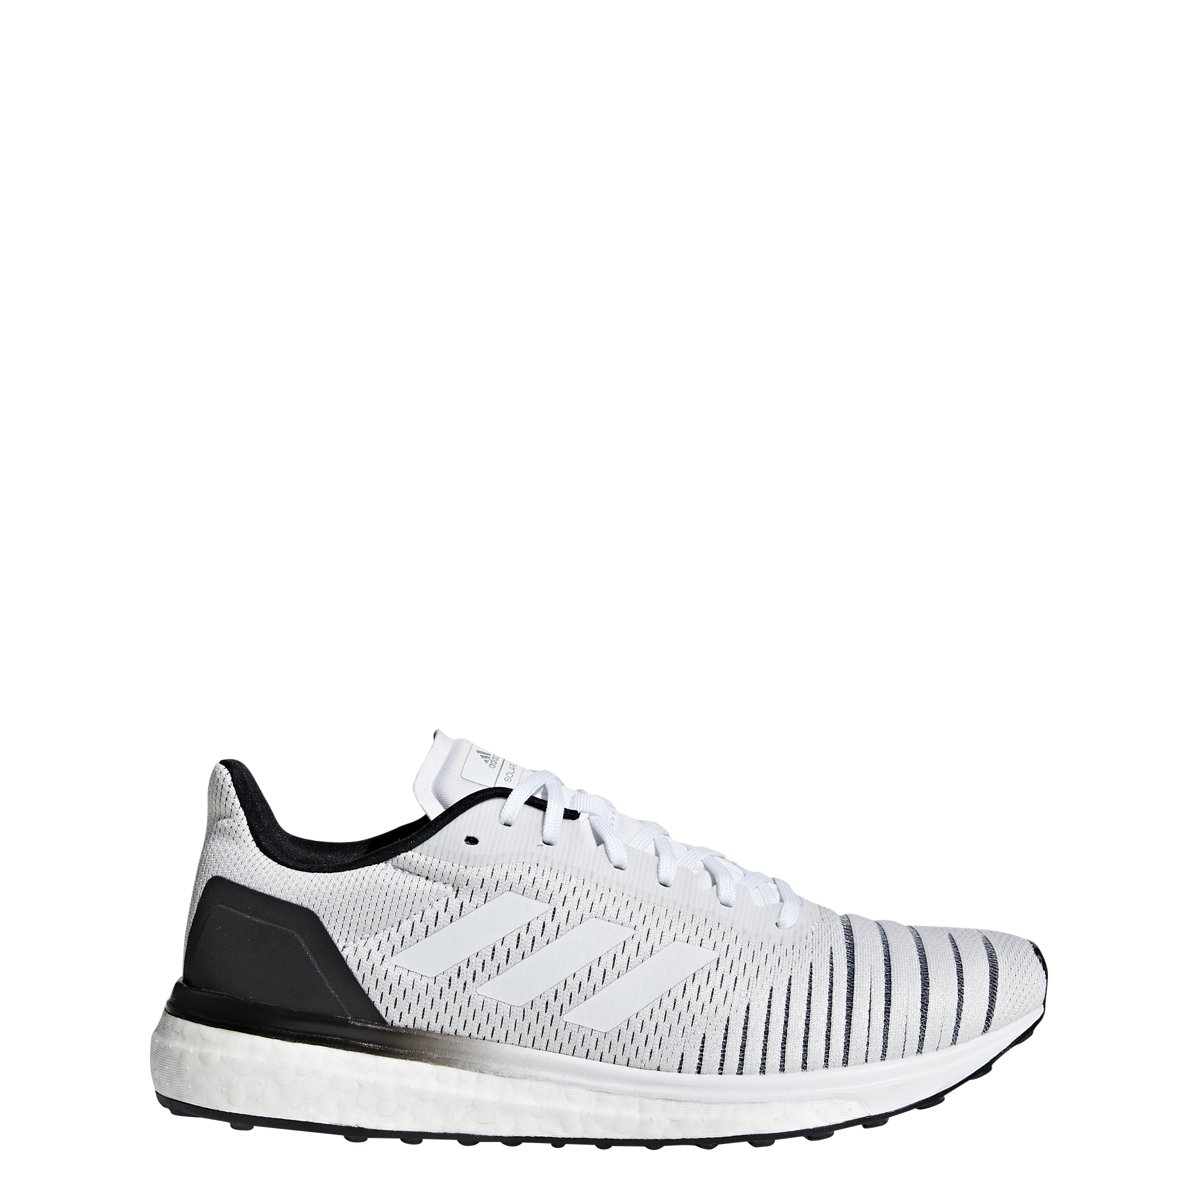 adidas Womens Solar Drive Trainers White/Black 8